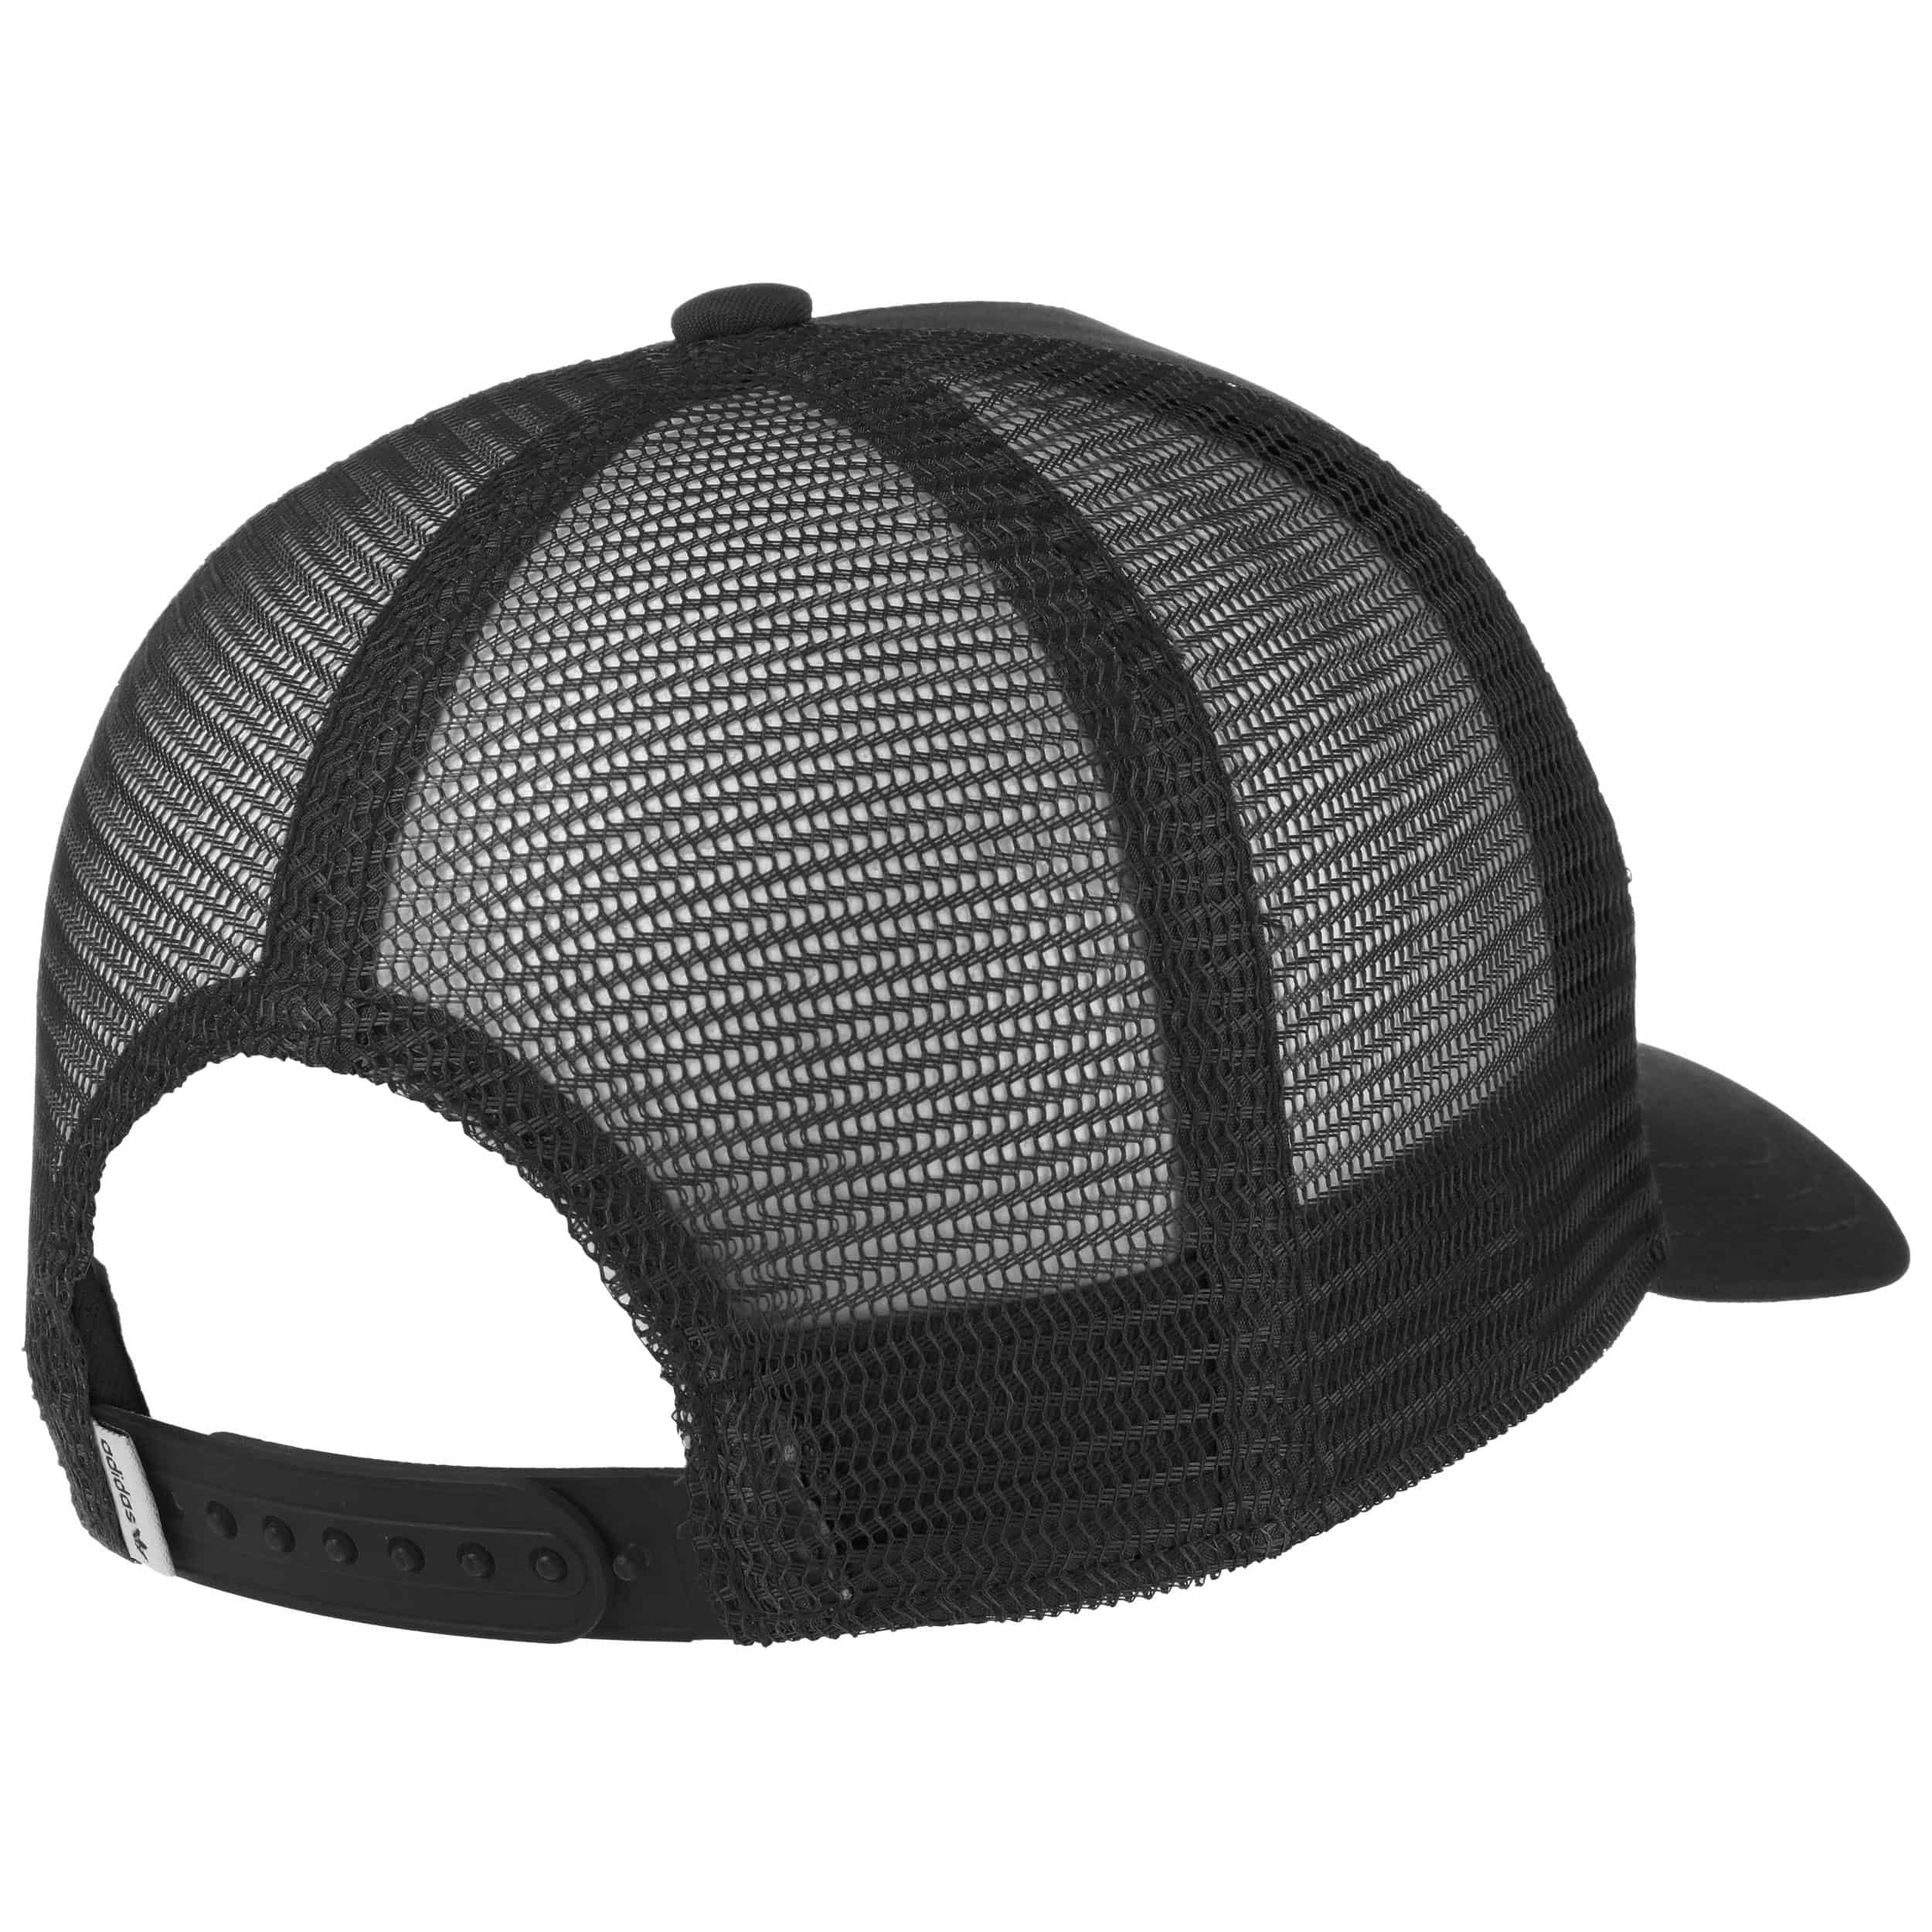 ... Trefoil Trucker Cap by adidas - black 1 ... 274f22780aa6